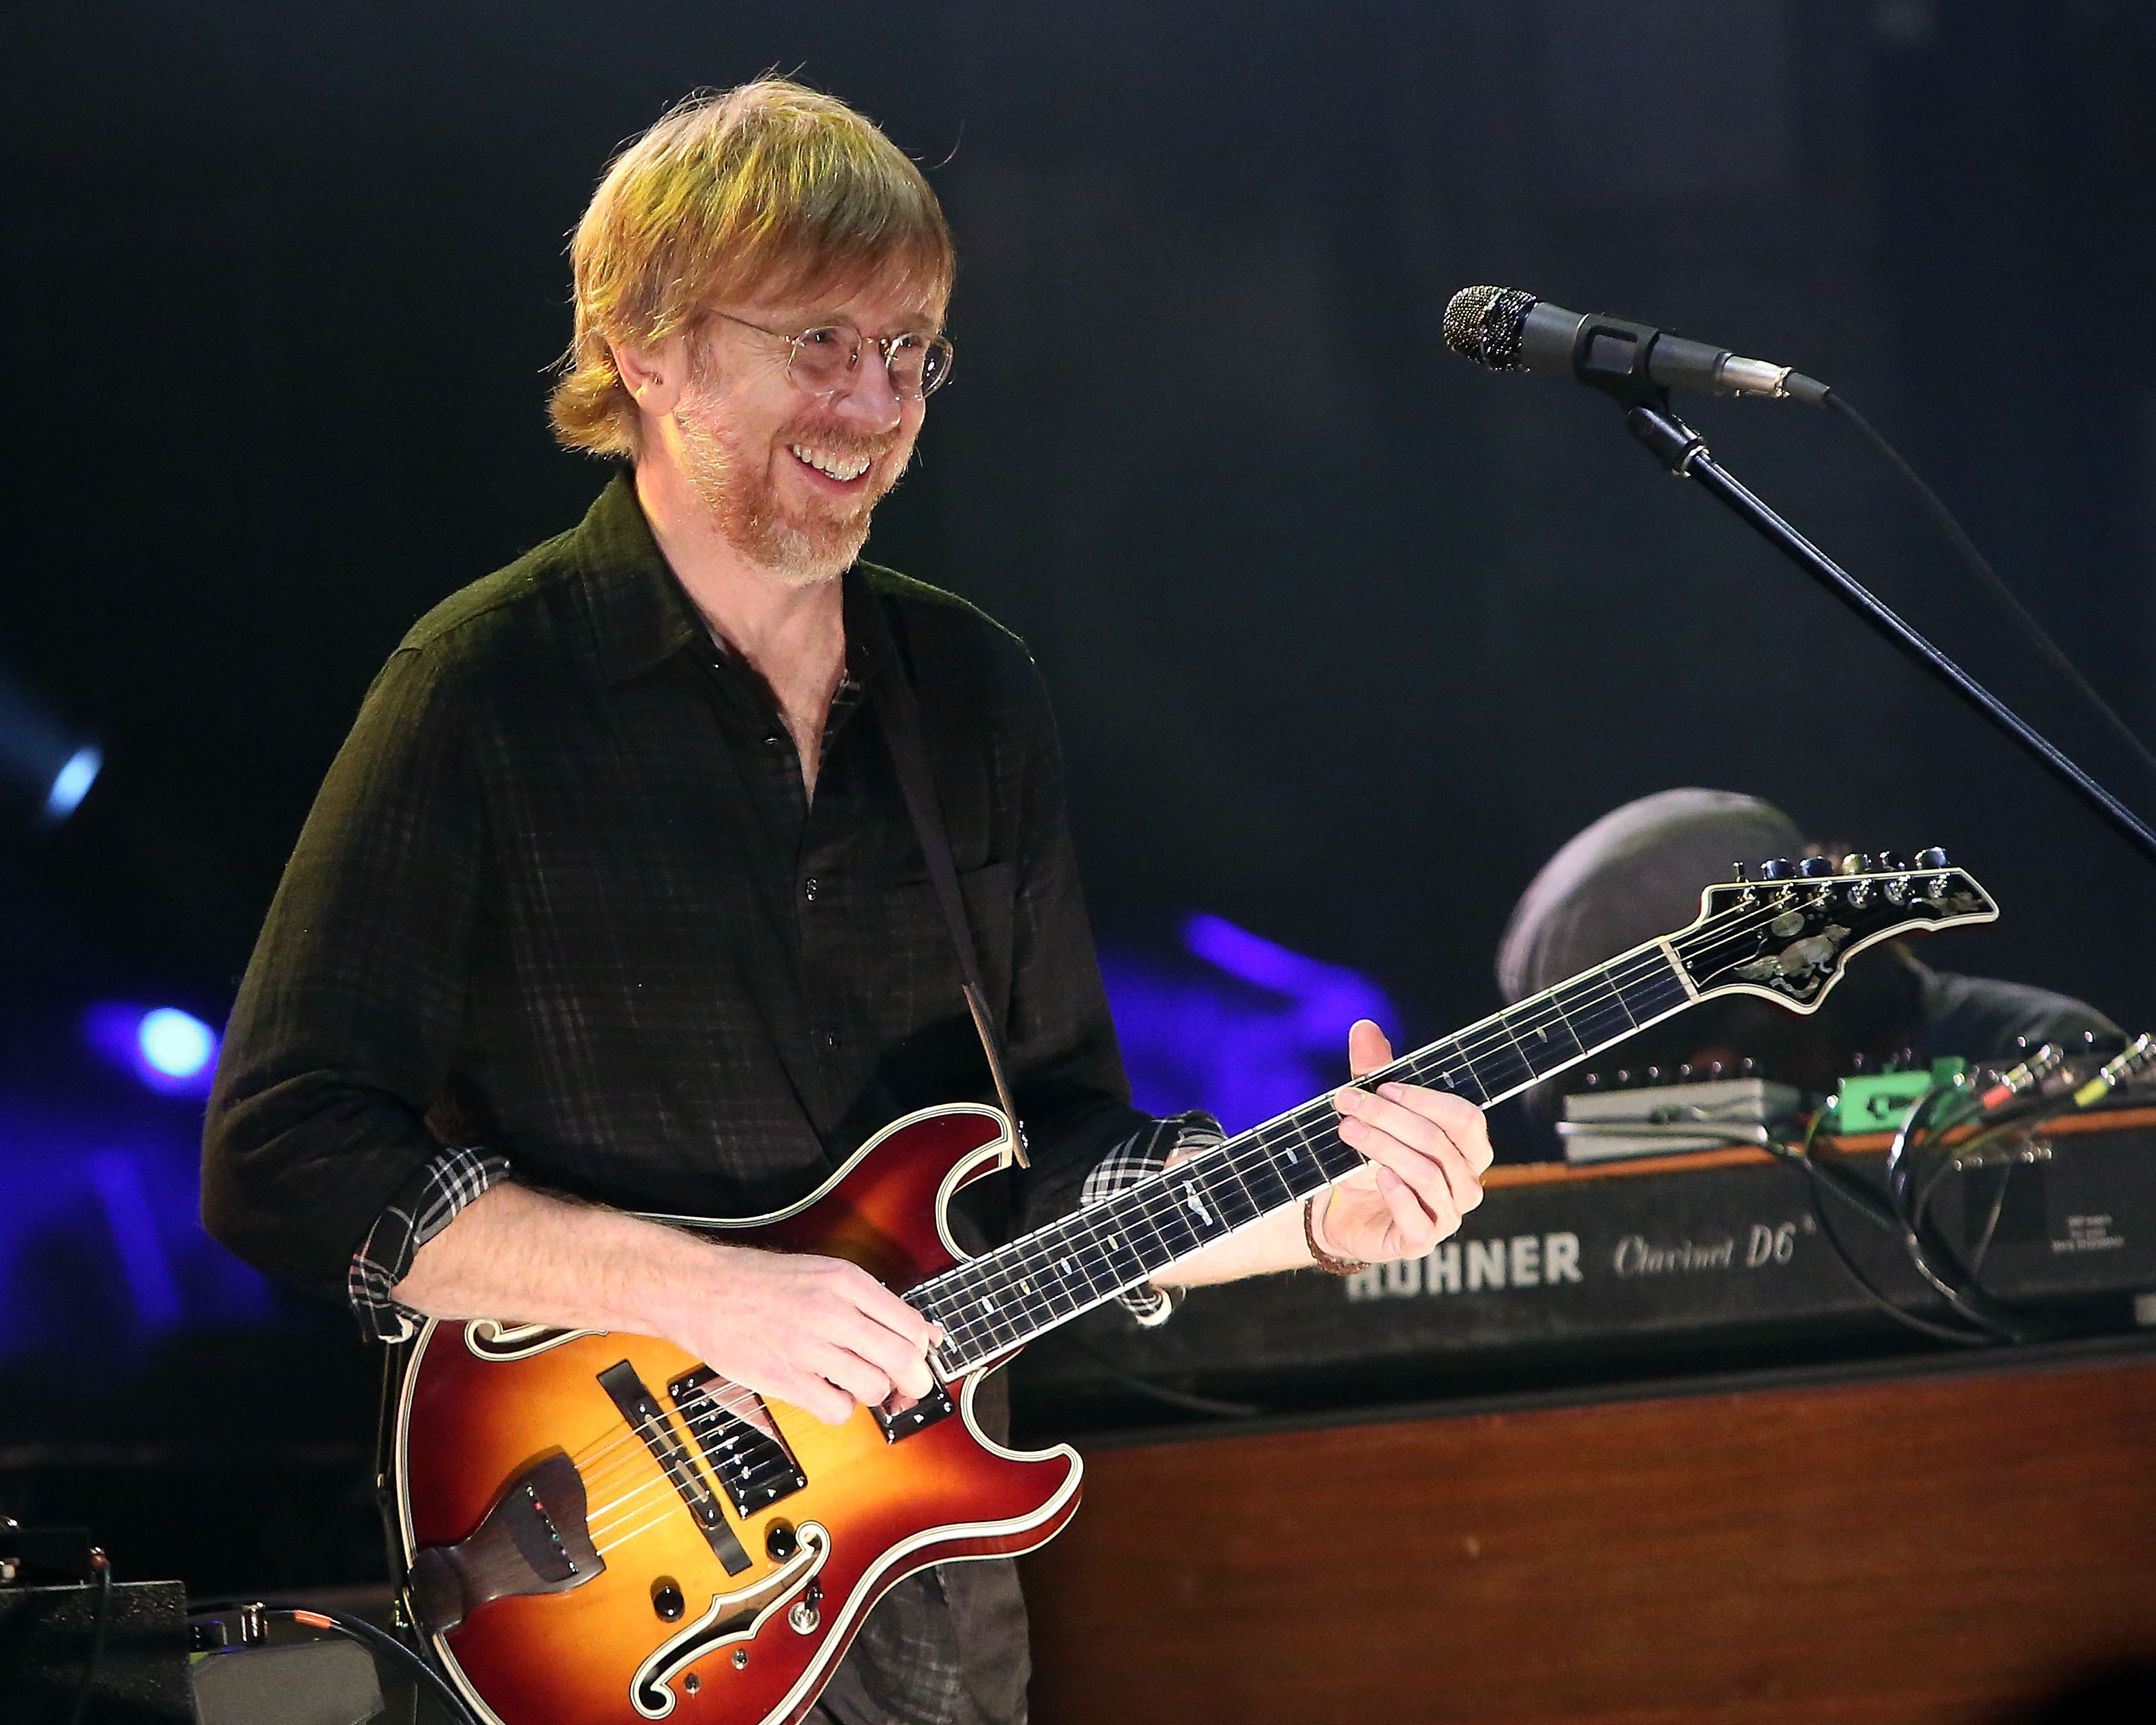 Trey Anastasio performs at Beacon Theatre on Dec. 11, 2014 in New York City.